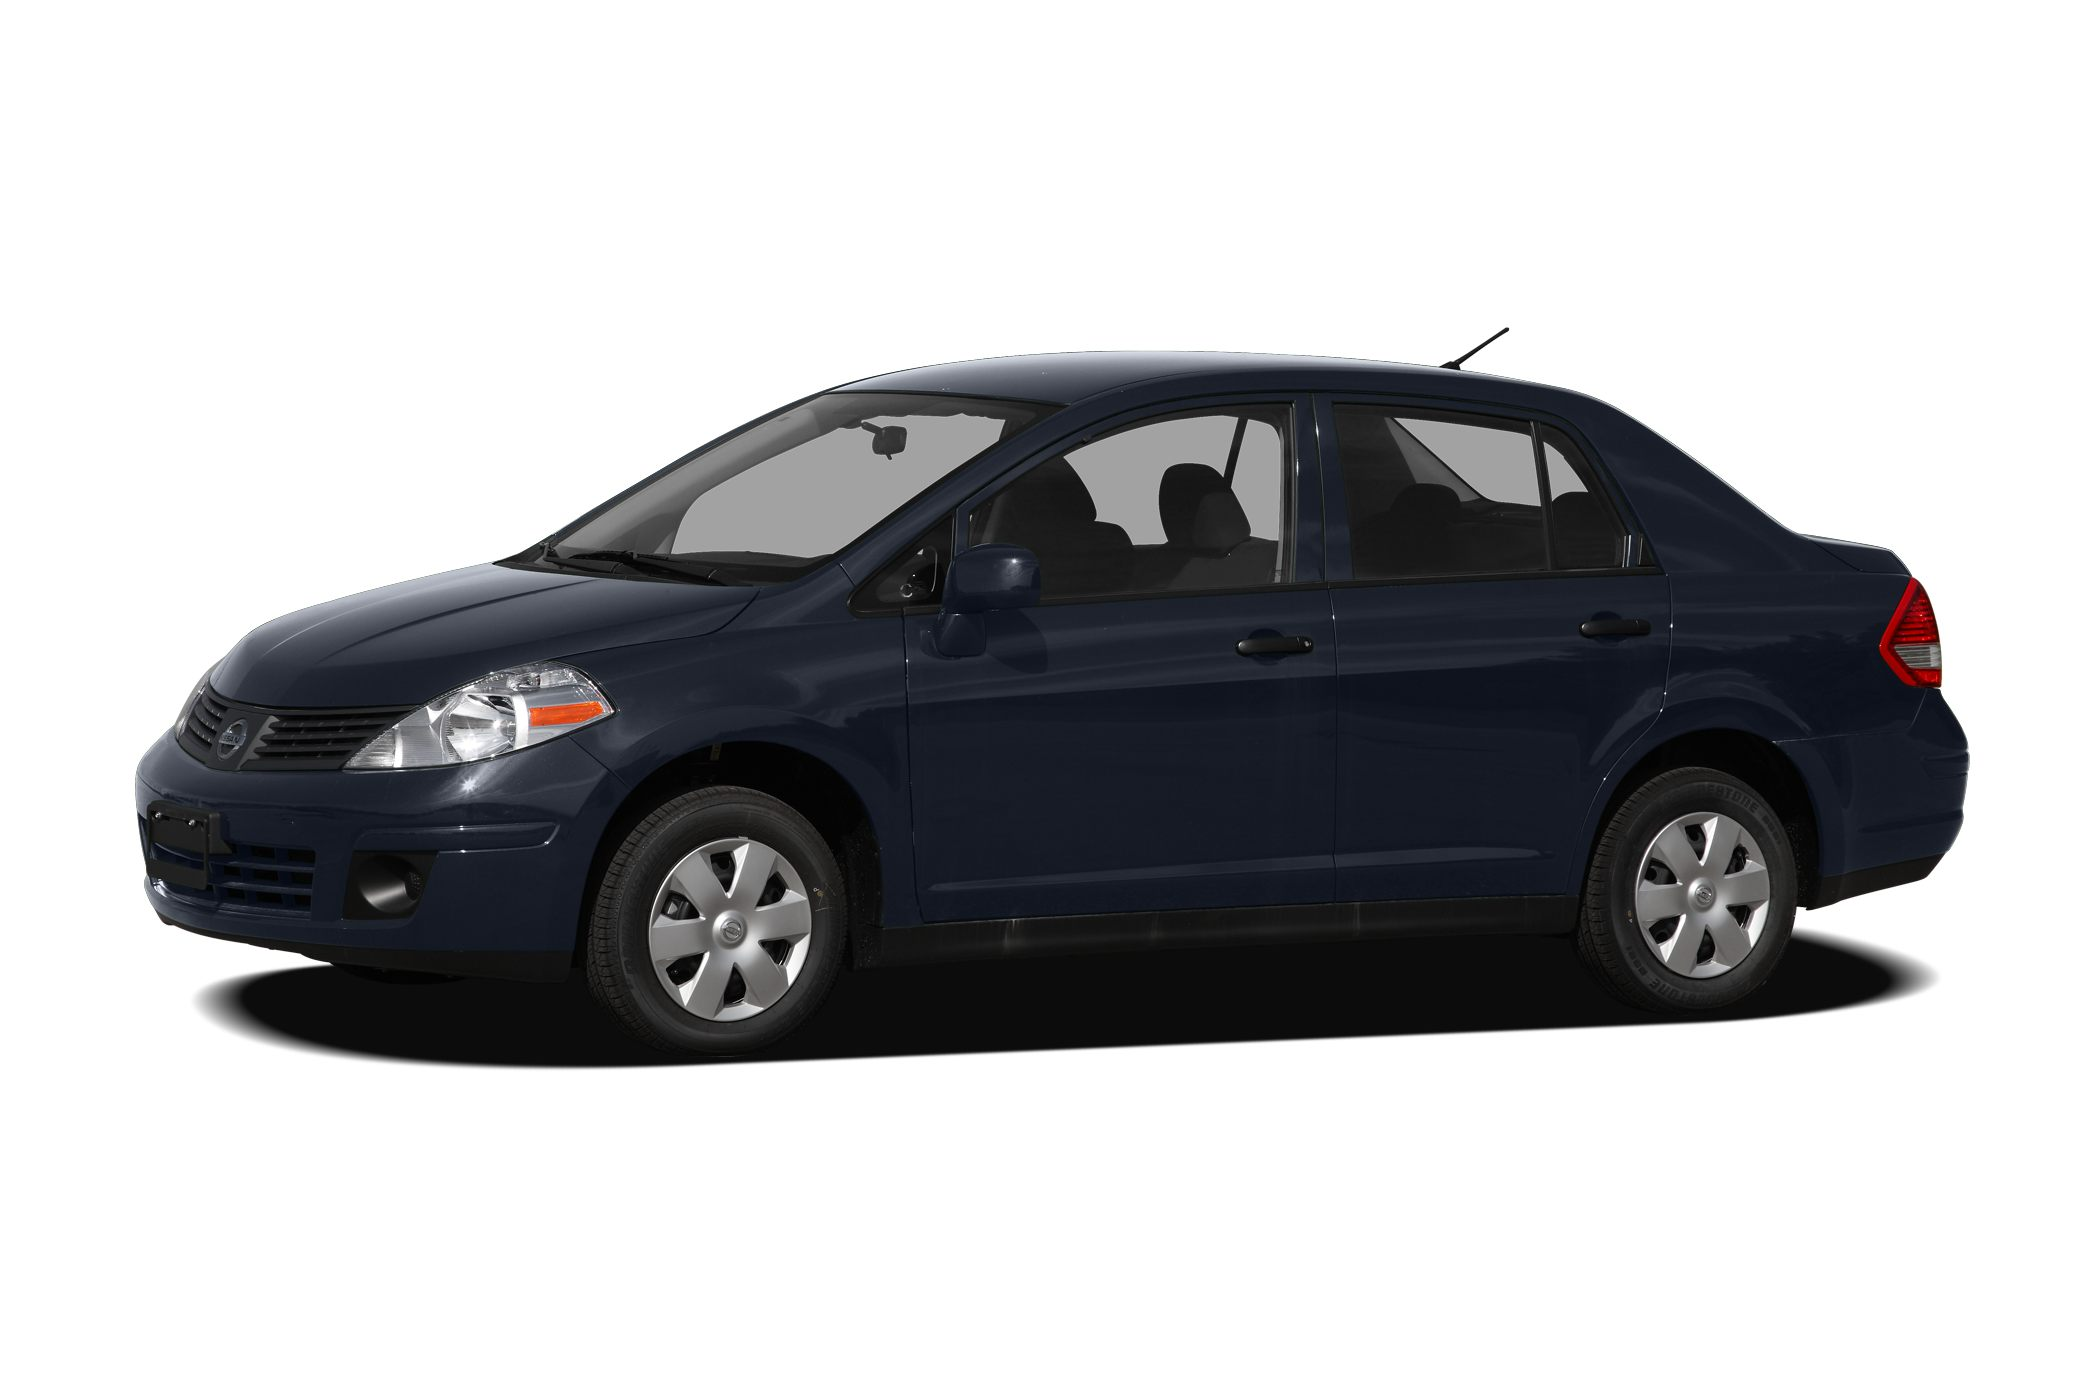 2009 Nissan Versa 16 3-DAY EXCHANGE Miles 1Color Blue Onyx Metallic Stock P2063T VIN 3N1